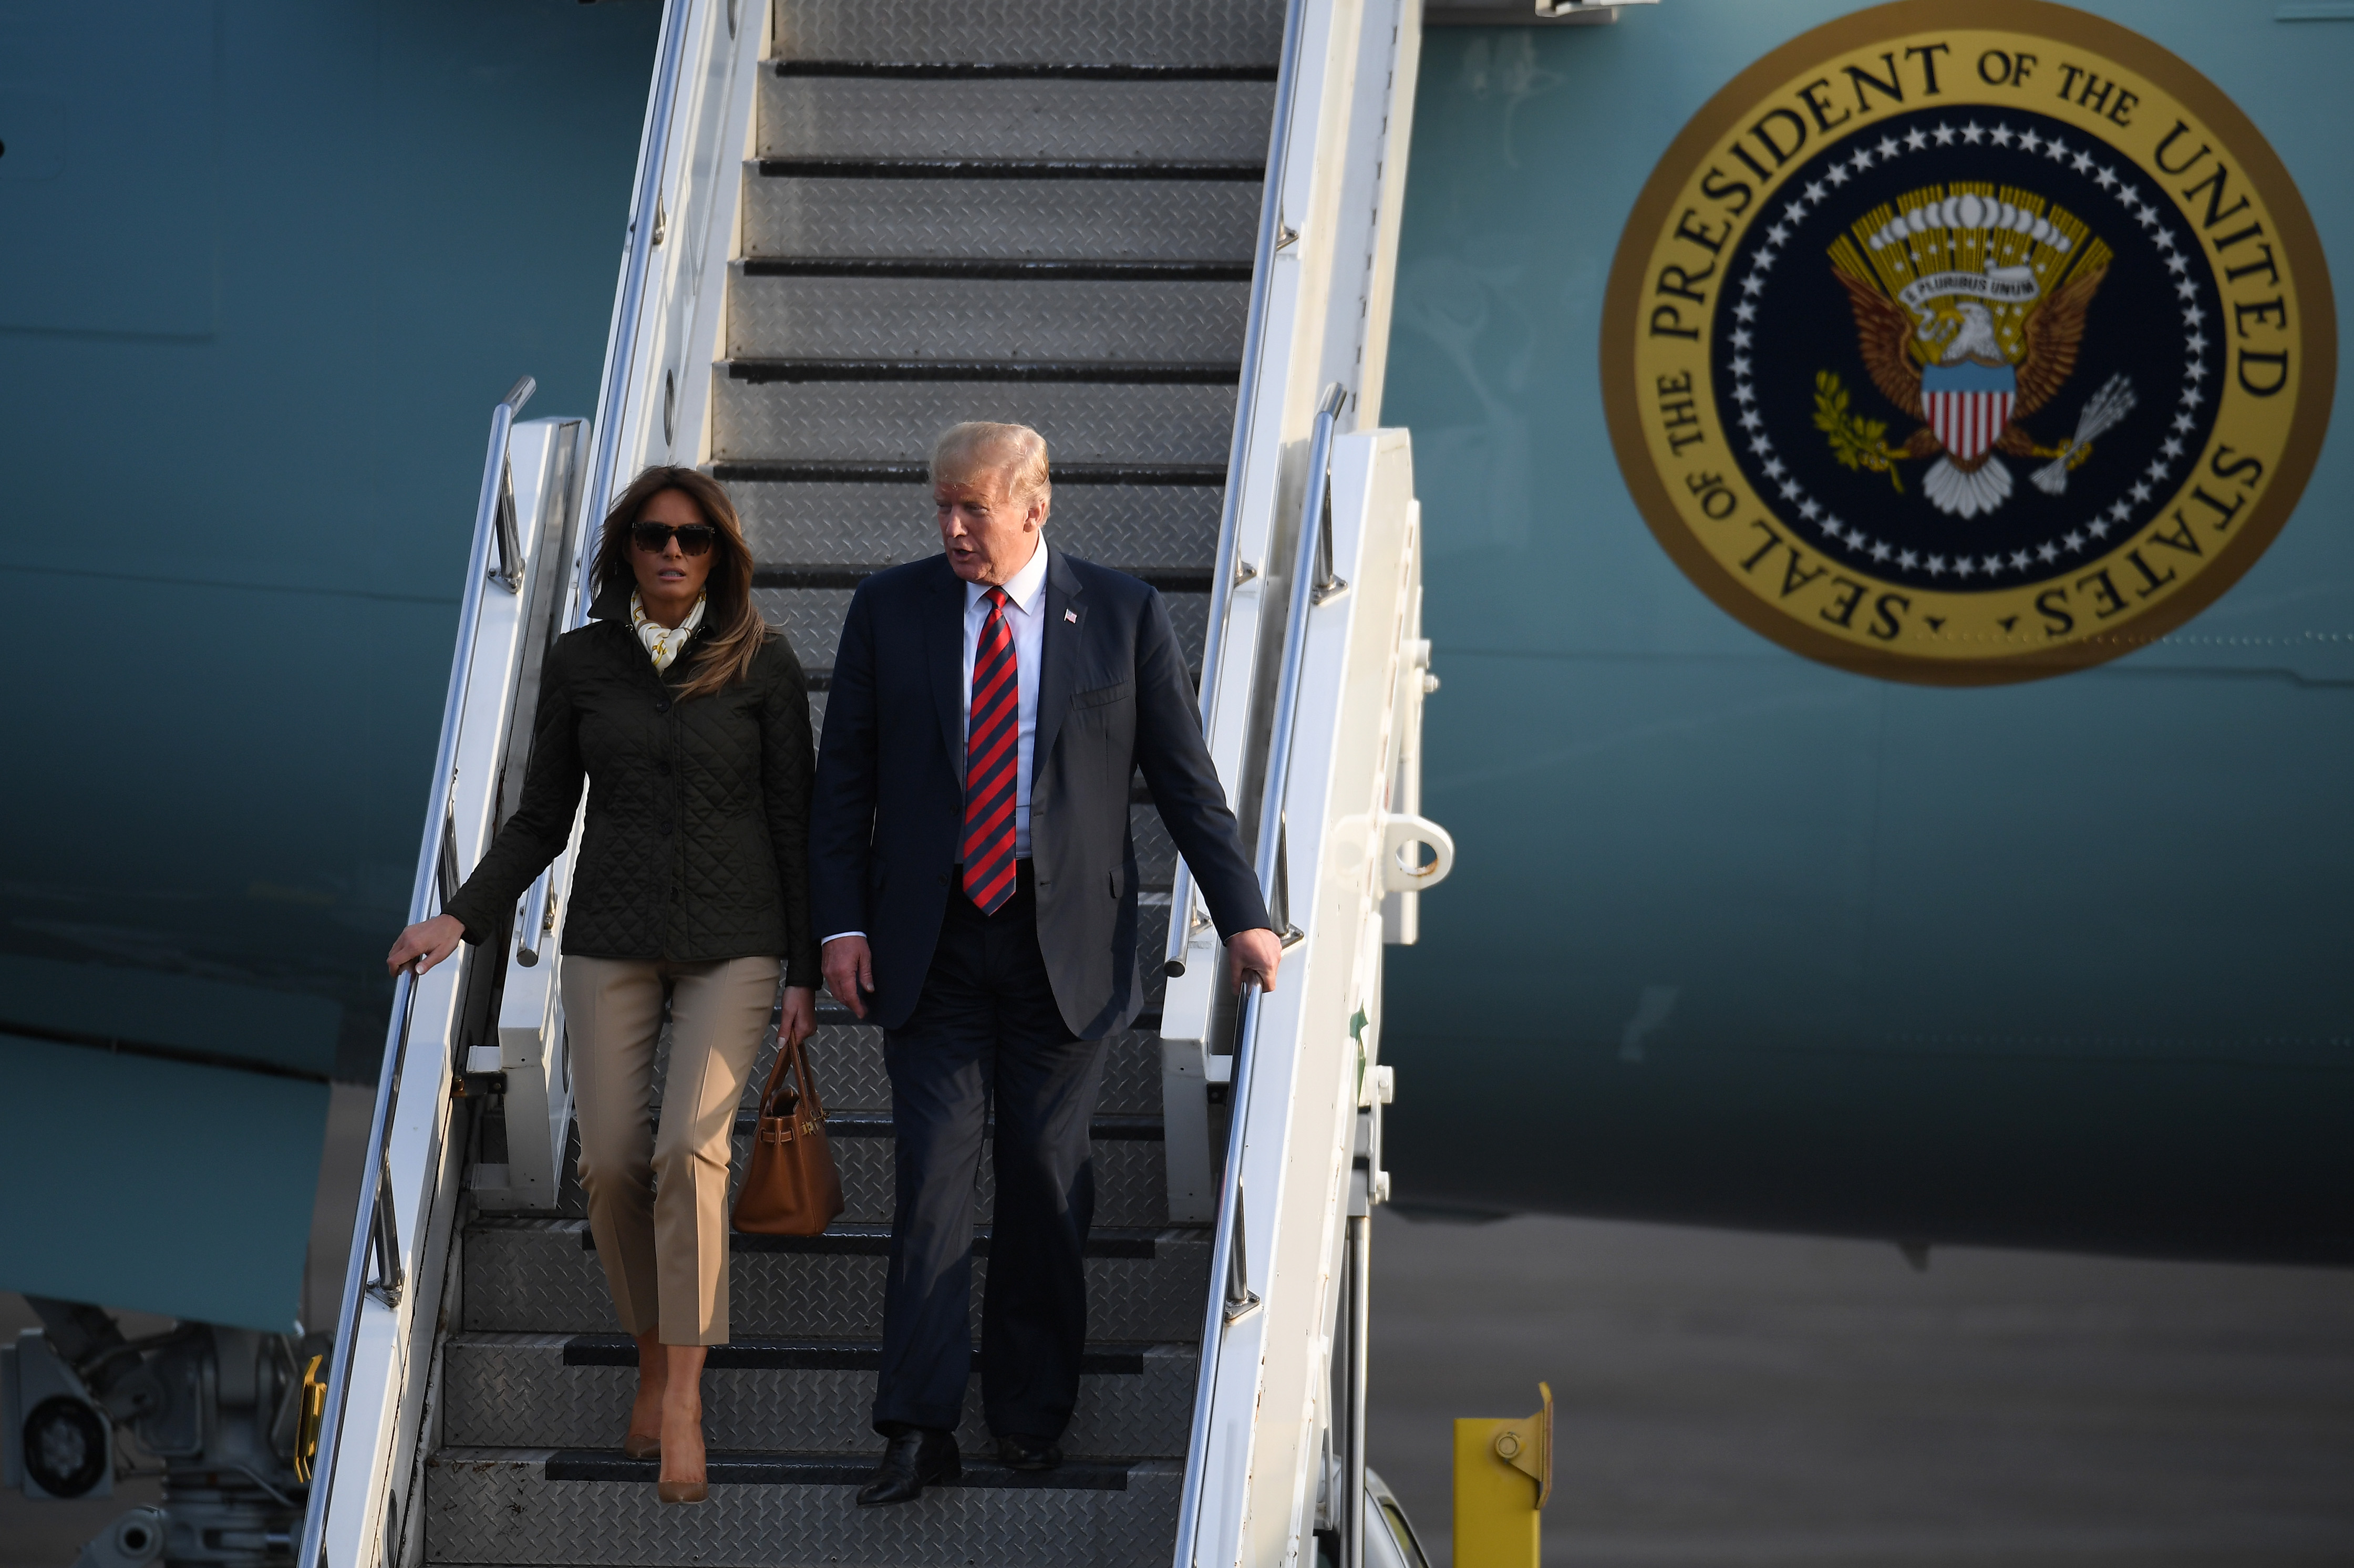 The President of the United States, Donald Trump and First Lady, Melania Trump arrive at Glasgow Prestwick Airport on July 13, 2018 in Glasgow, Scotland.